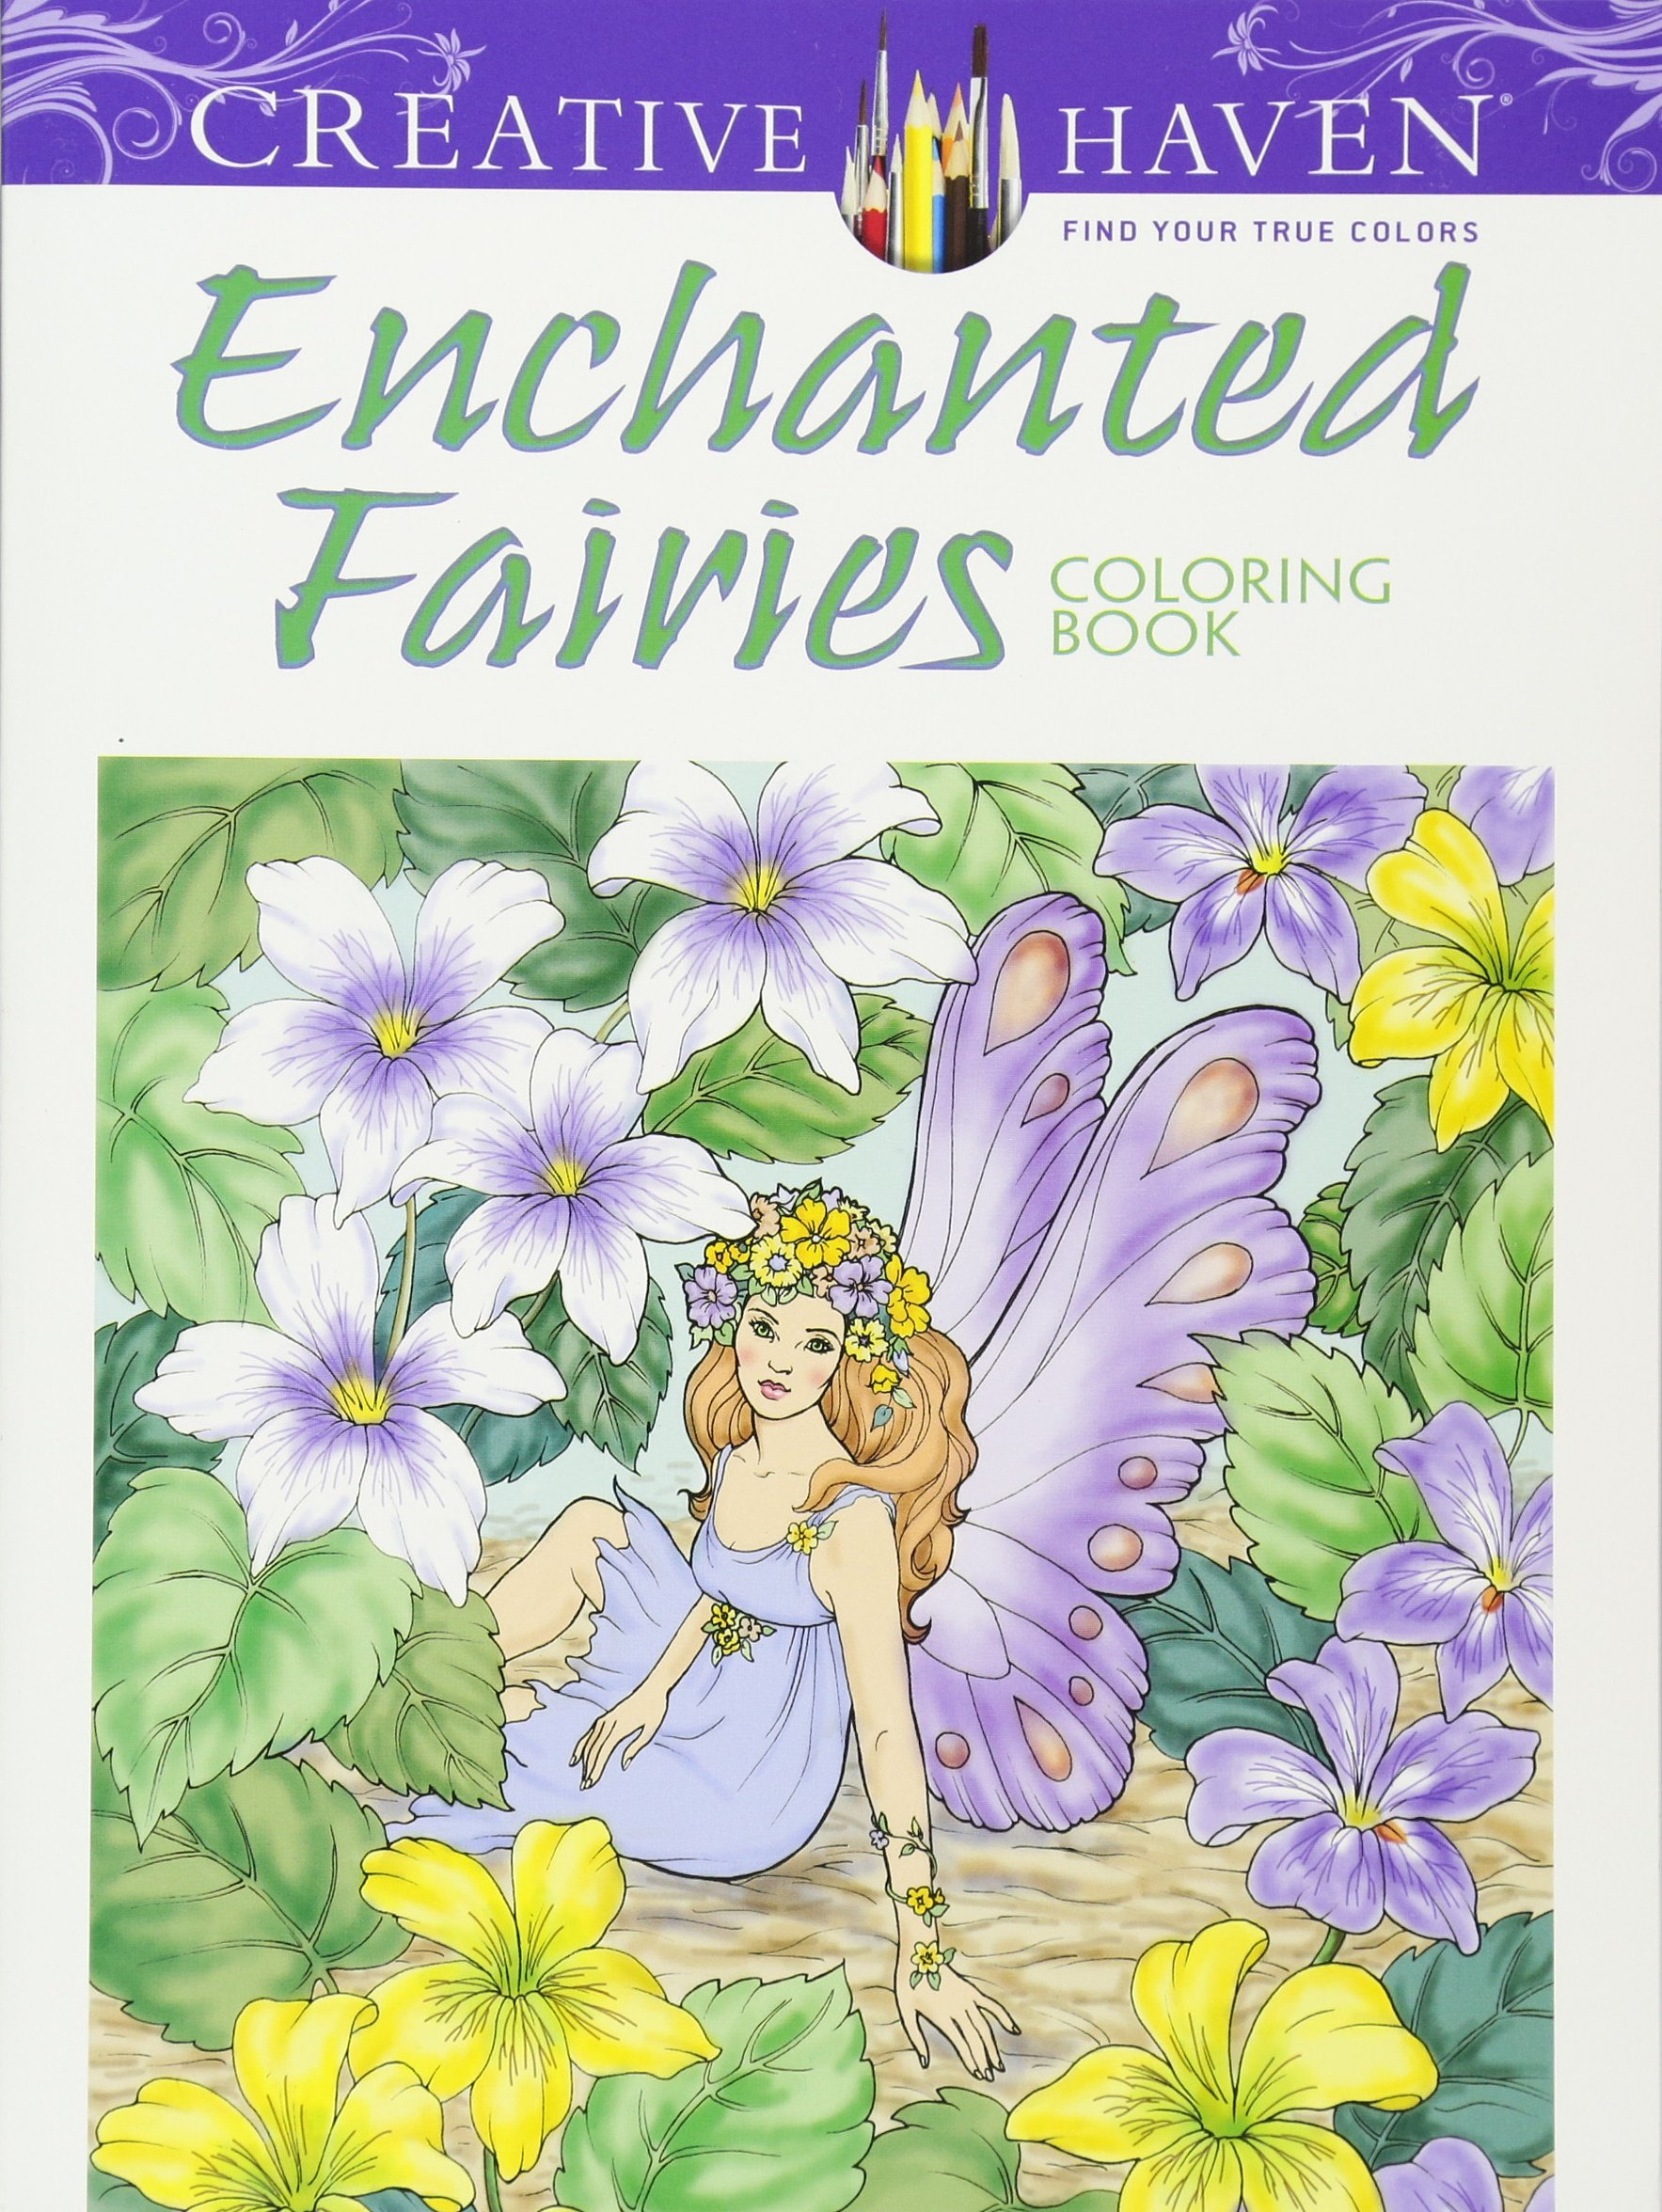 Creative Haven Enchanted Fairies Coloring product image